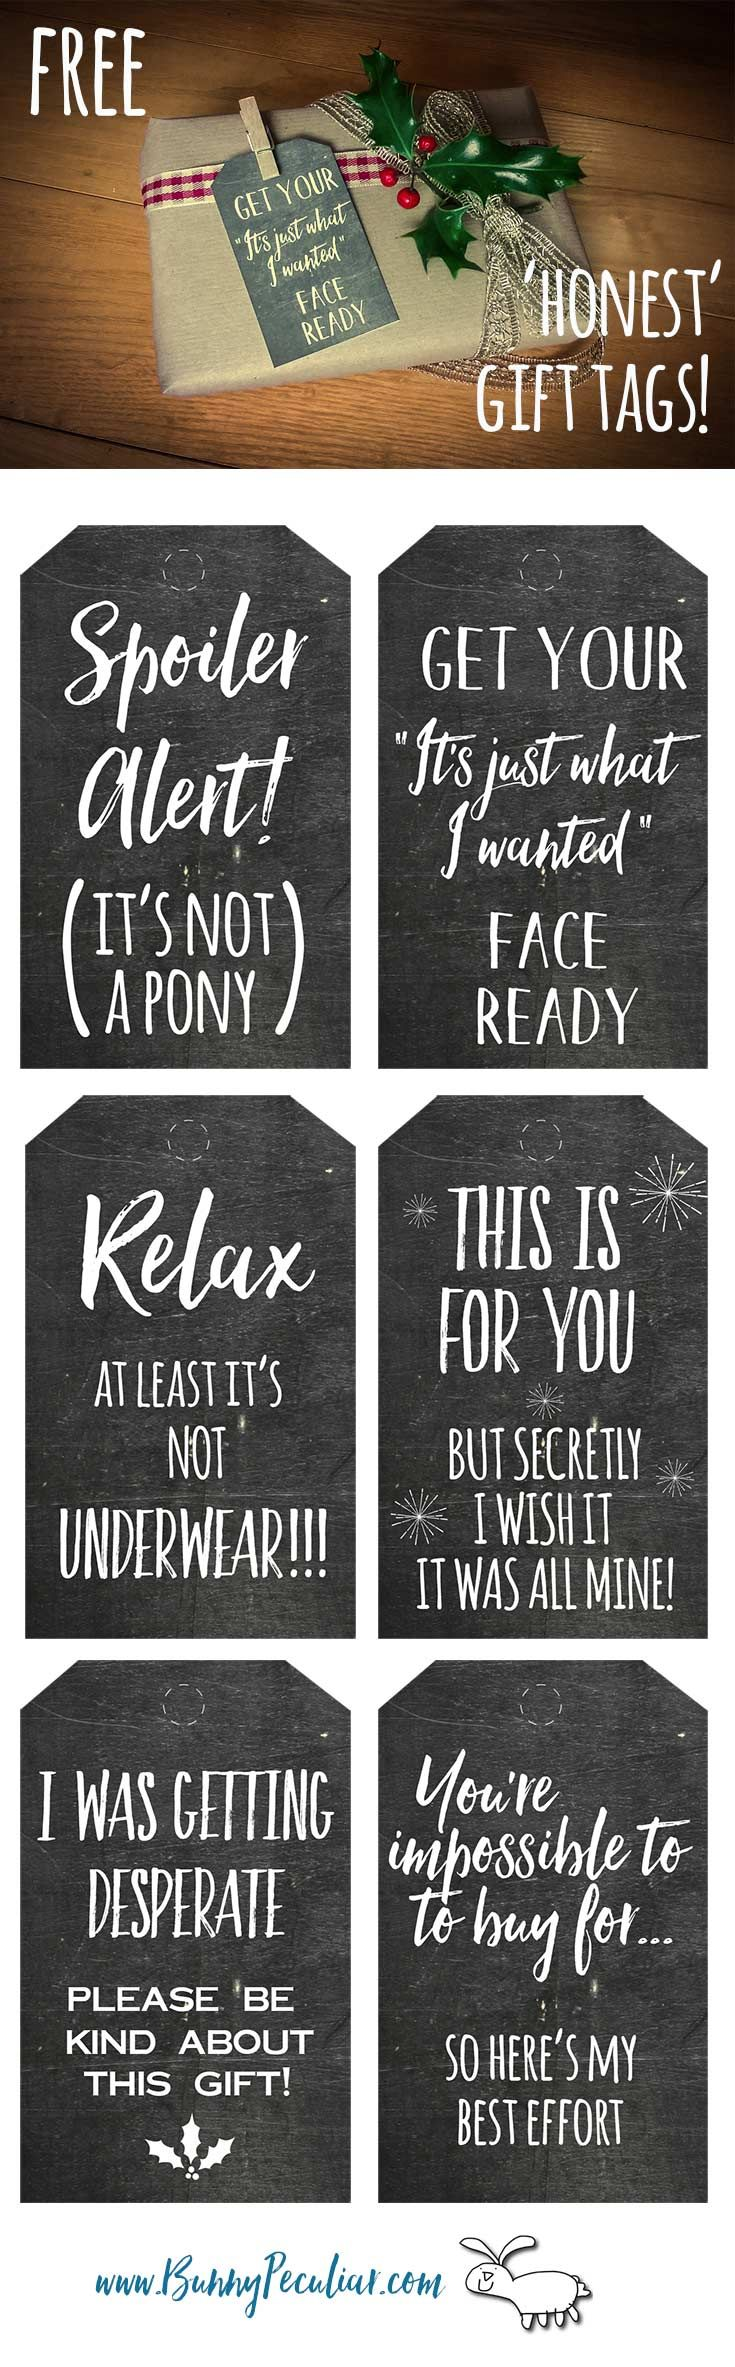 Honest Christmas chalkboard gift tags are what you really need this holiday season. Tired of trying to guess what to buy people at Christmas? Check out these free tags from Bunny Peculiar.                                                                                                                                                      More